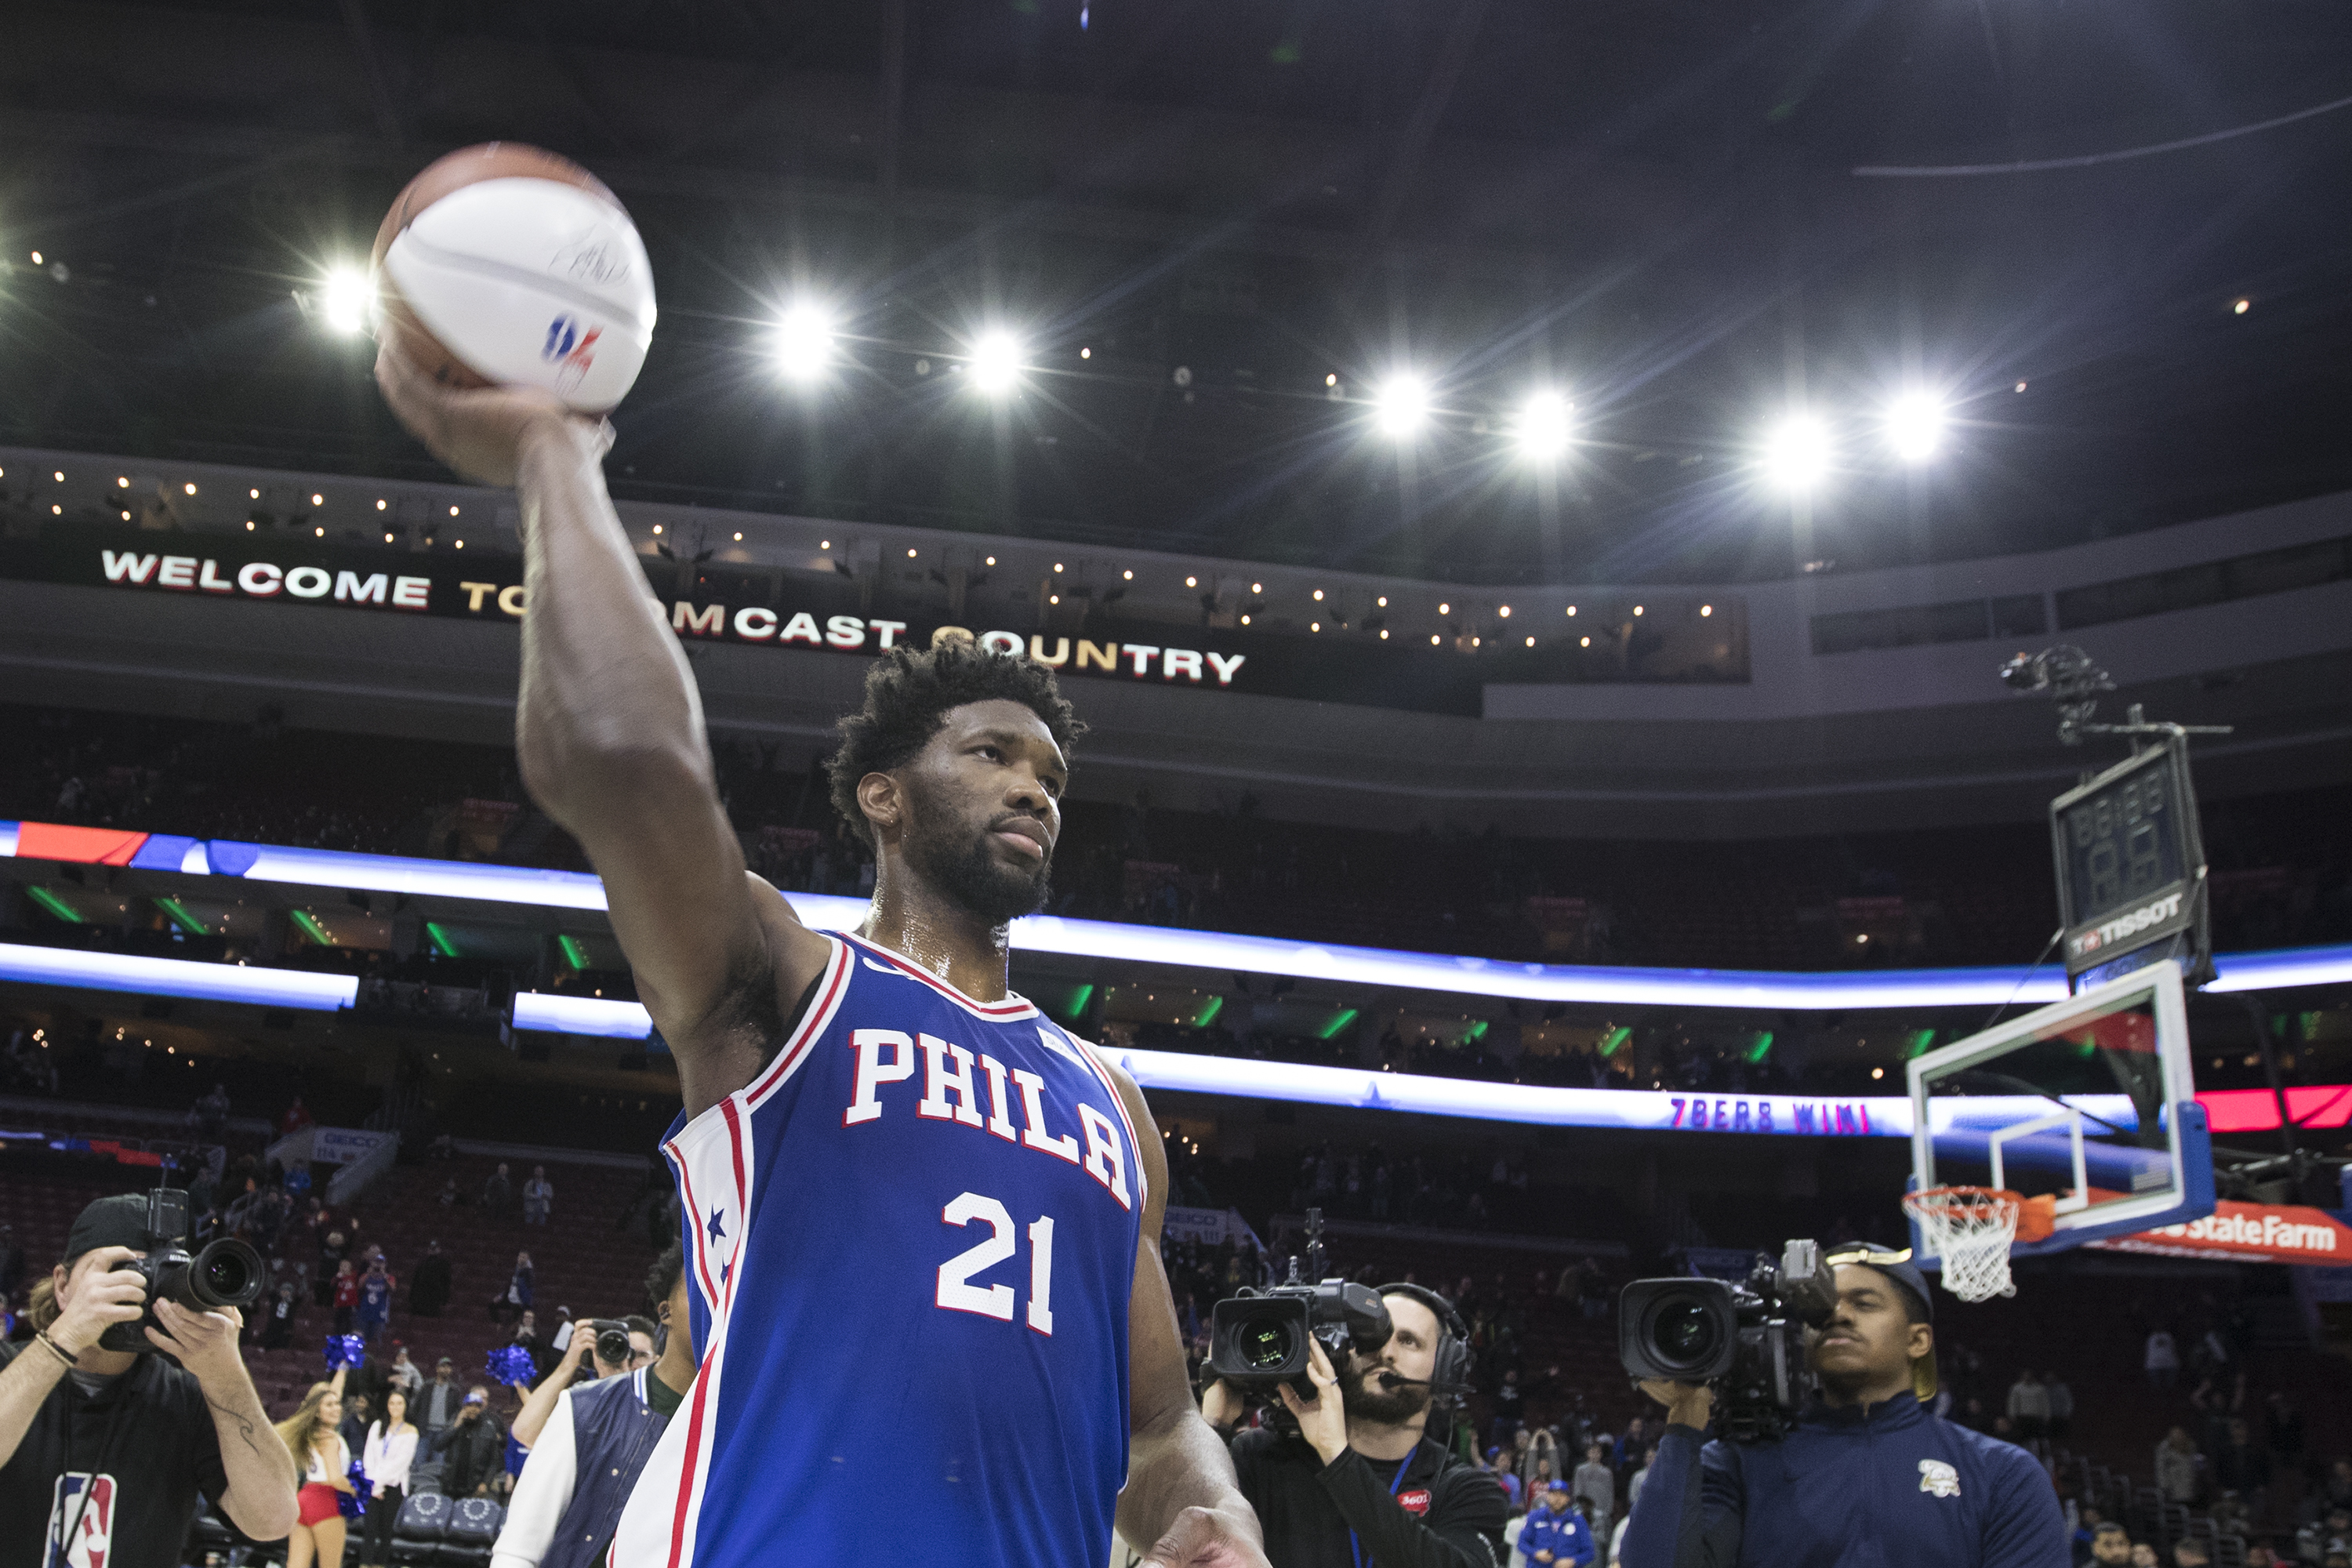 After being named player of the game, Joel Embiid of the Sixers throws an autographed basketball into the crowd. The Sixers defeated the Wizards 115-102 at the Wells Fargo Center on Feb. 6, 2018.